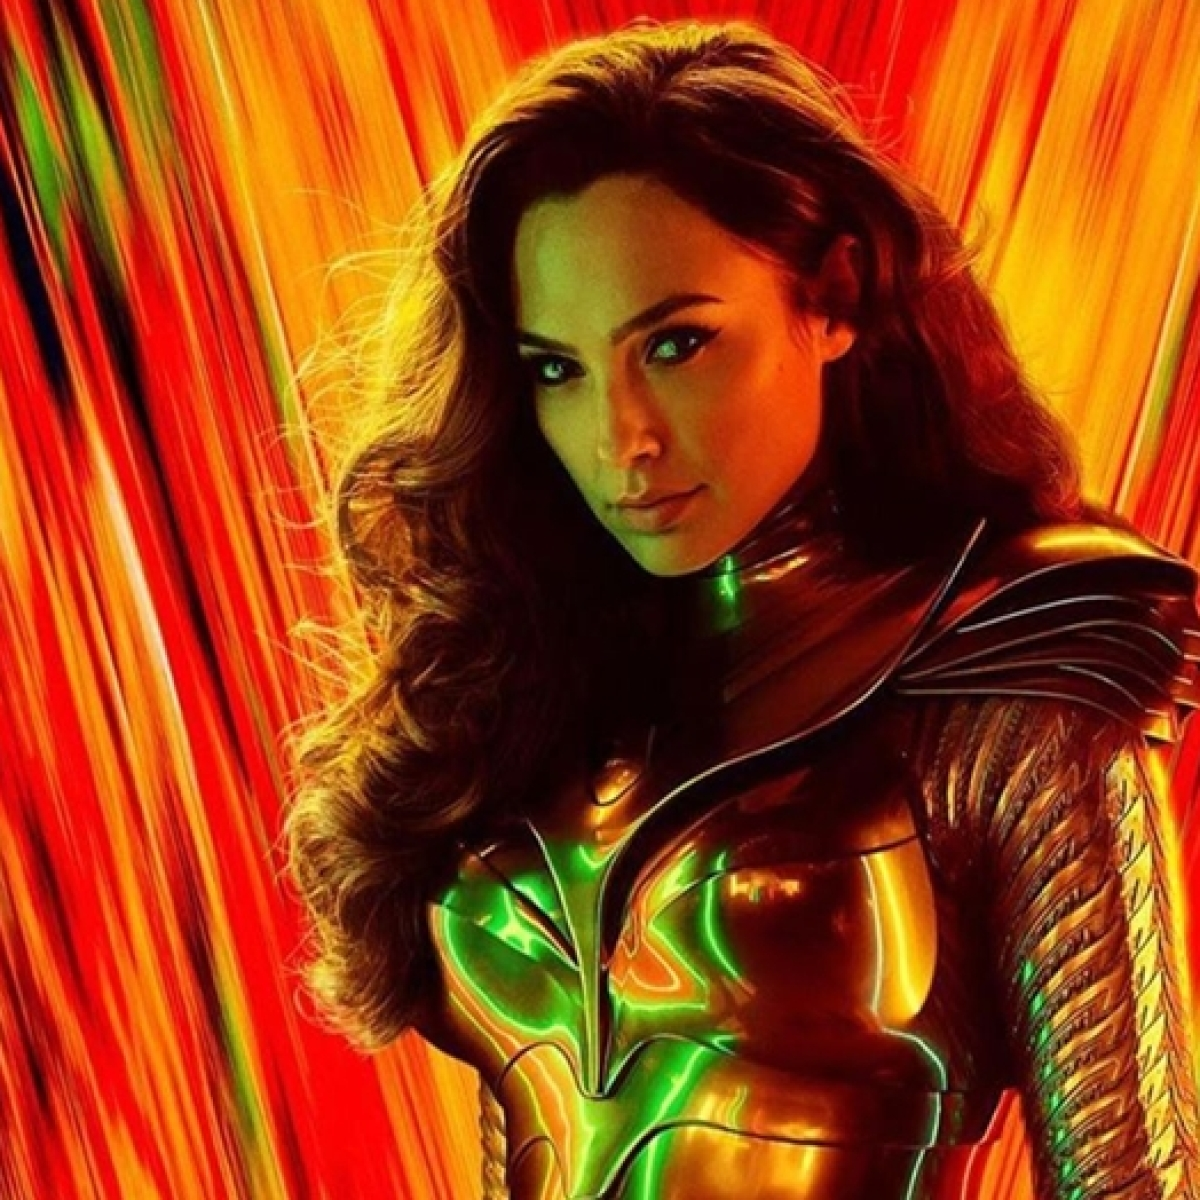 Wonder Woman 1984 Trailer: Gal Gadot returns as Diana in action packed sequel